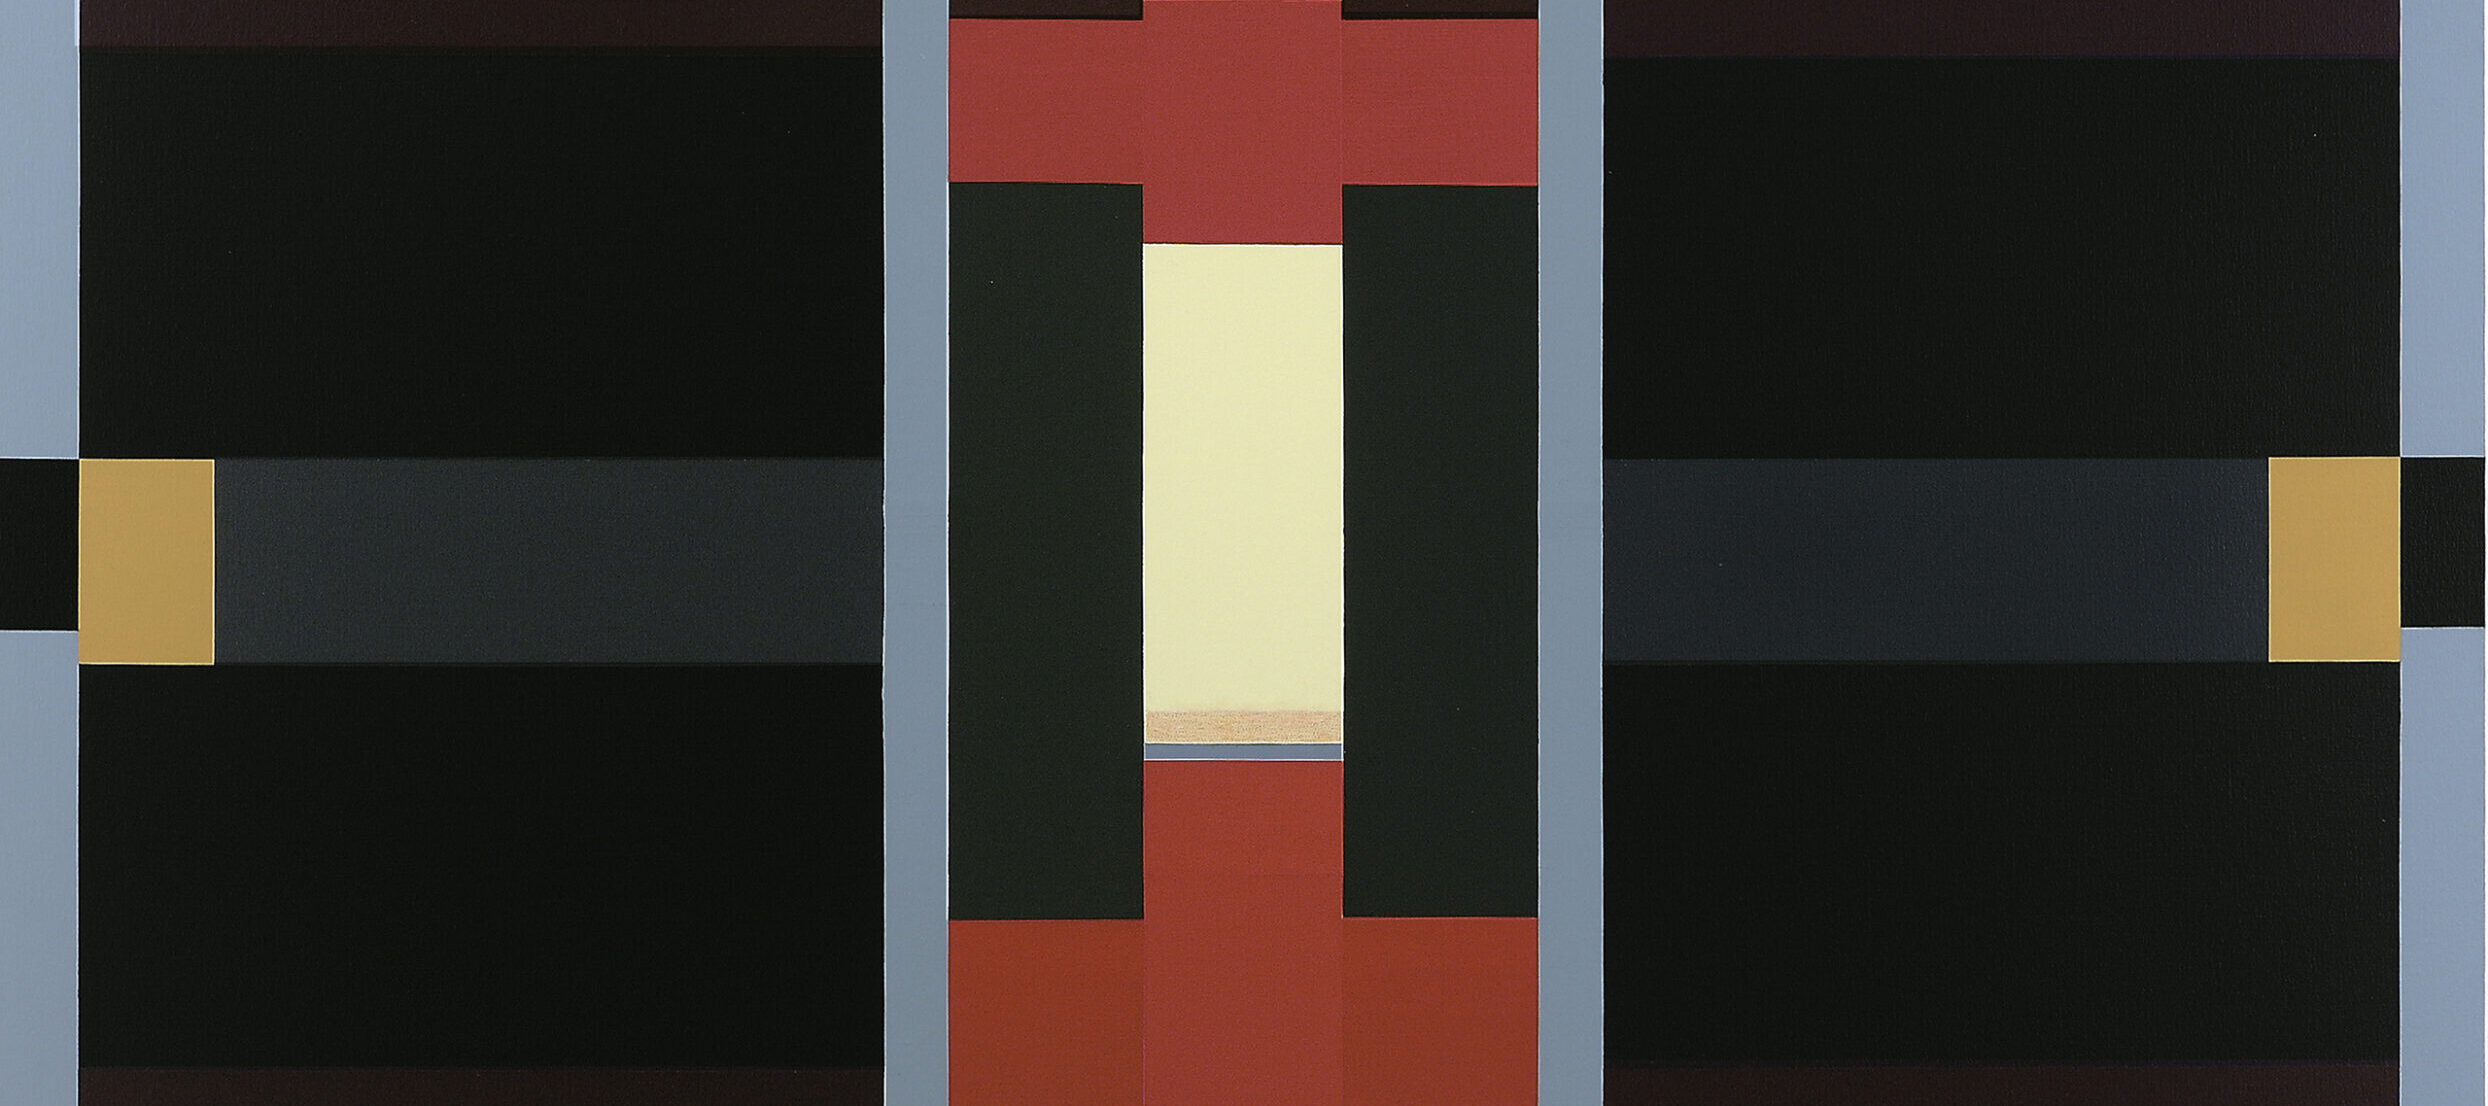 Abstract painting of varying sizes of rectangles divided into three vertical sections flanked by thin, light blue stripes. The central composition includes red cross-shapes with cream, grey and black rectangles; on either side are symmetrical black, brown, and gray horizontal stripes.